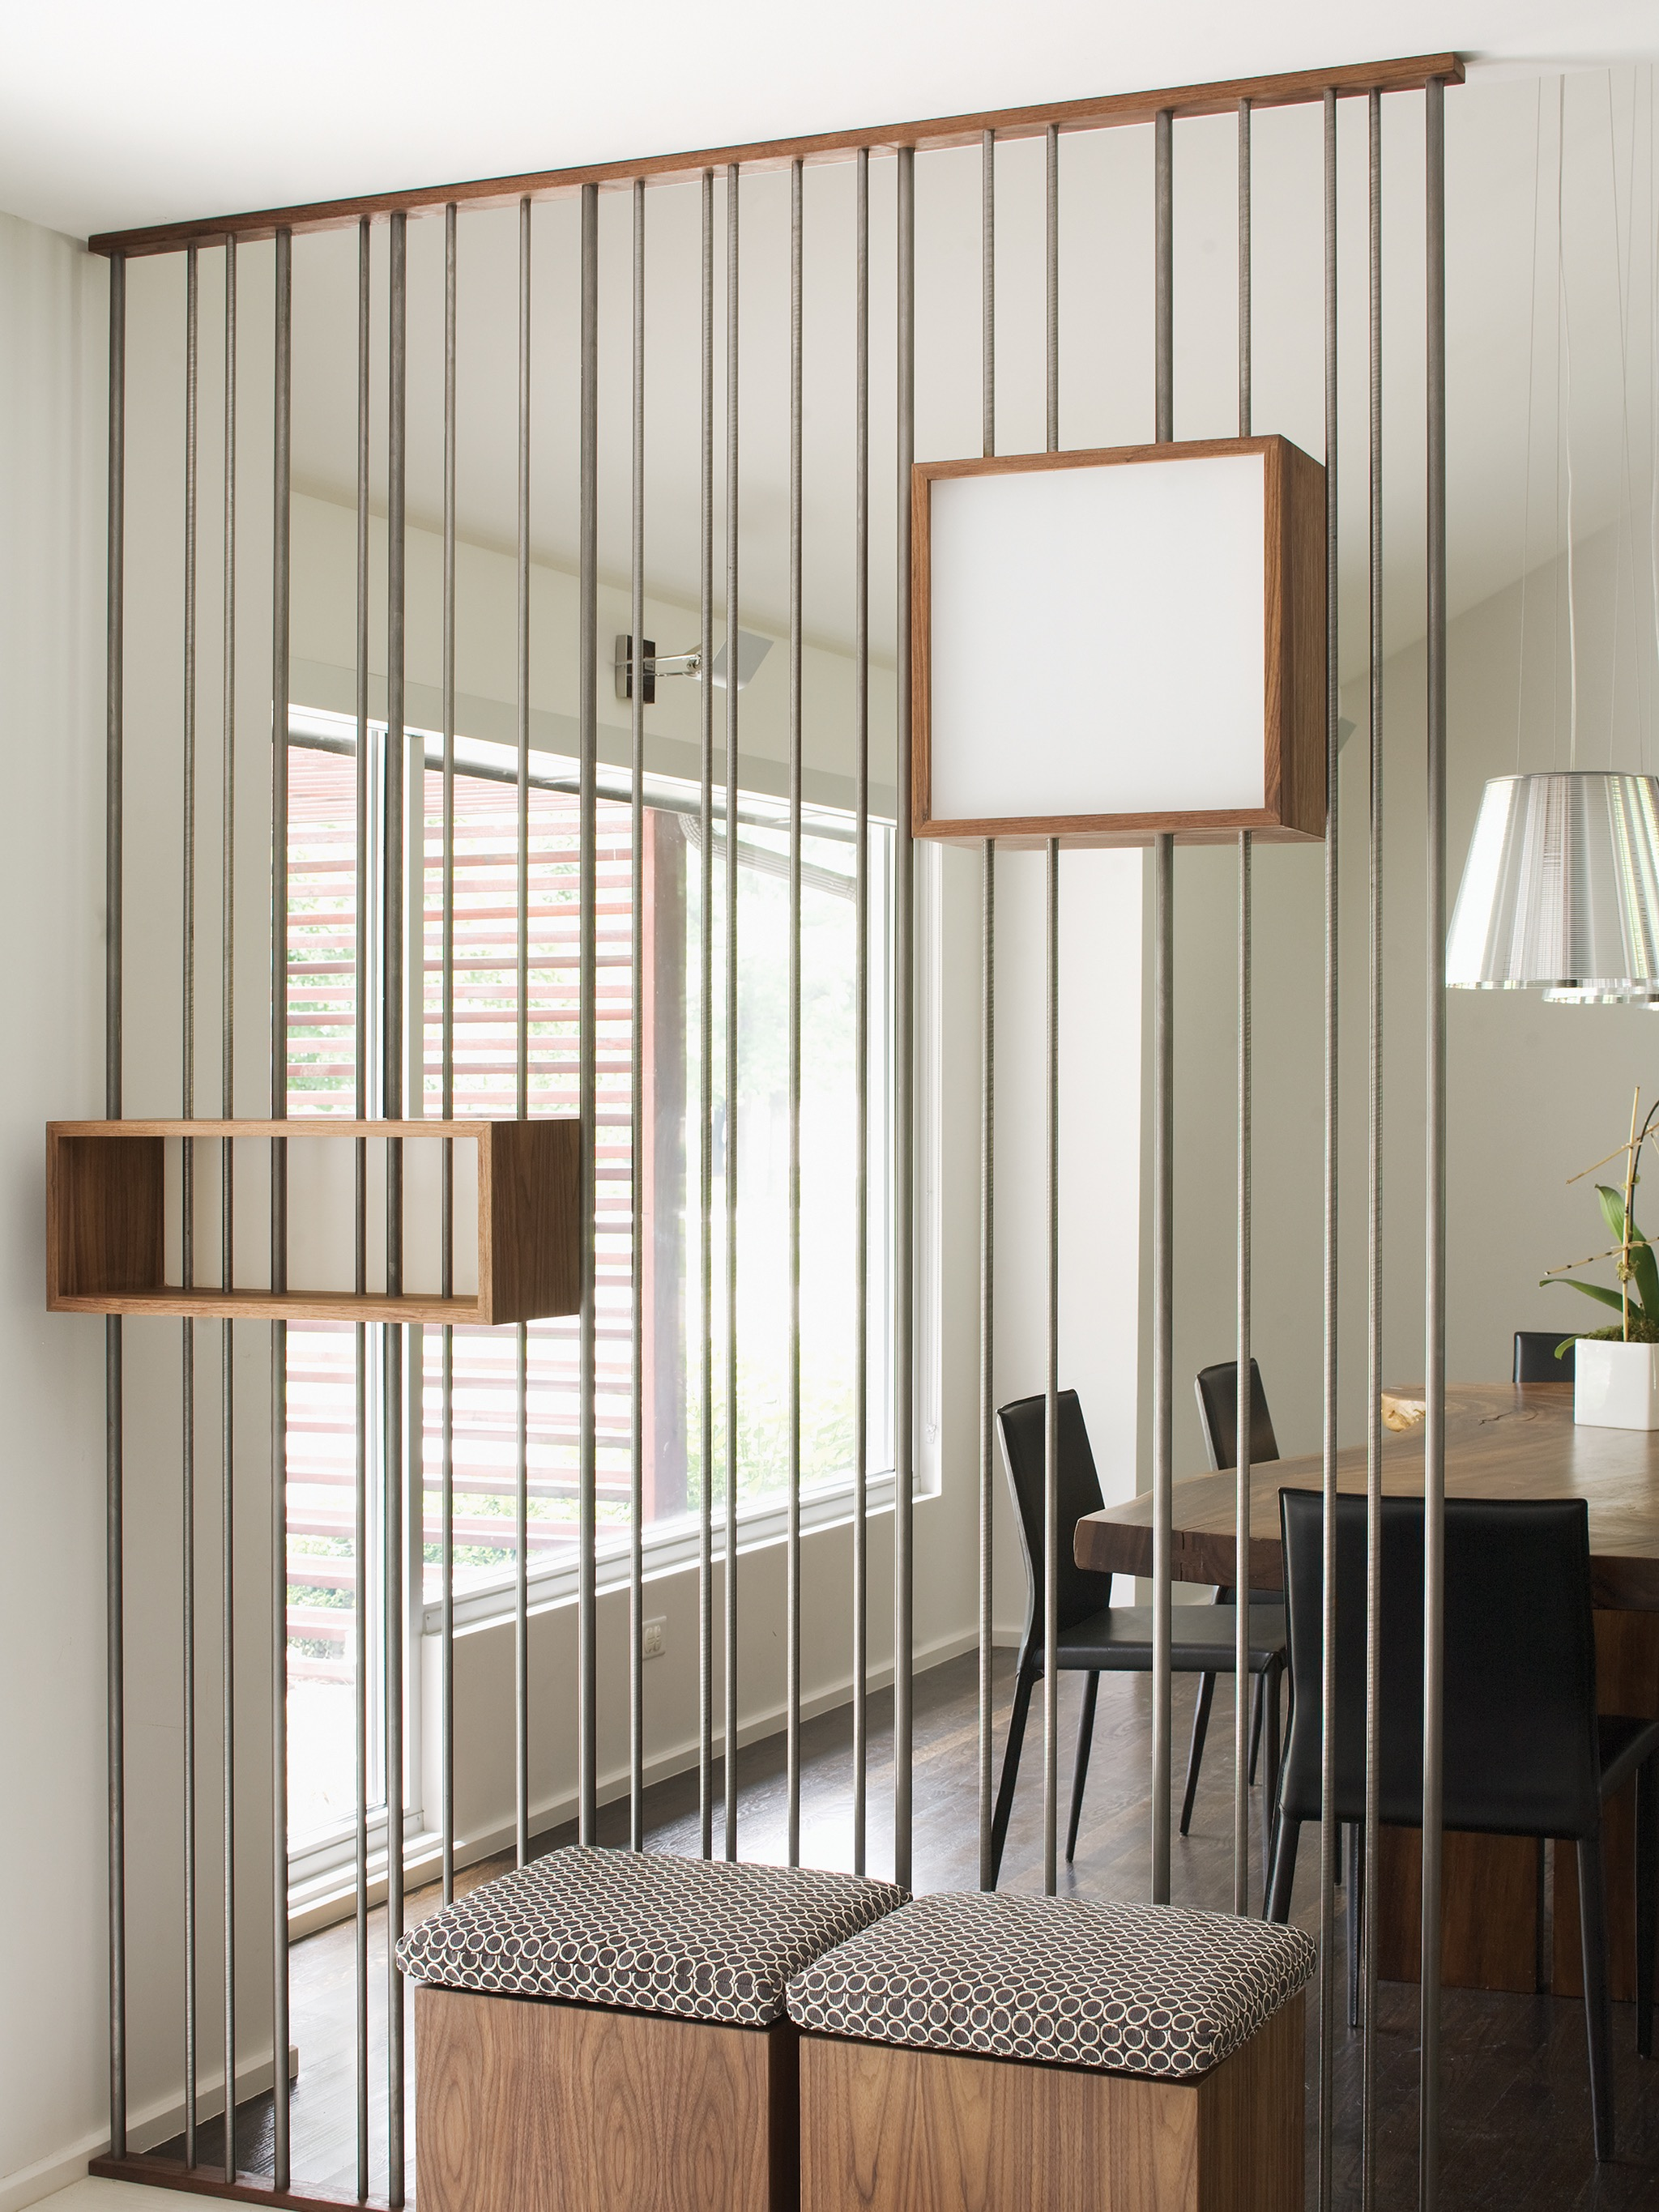 Contemporary Sculptural Modern Room Divider With Small Storage (View 4 of 14)